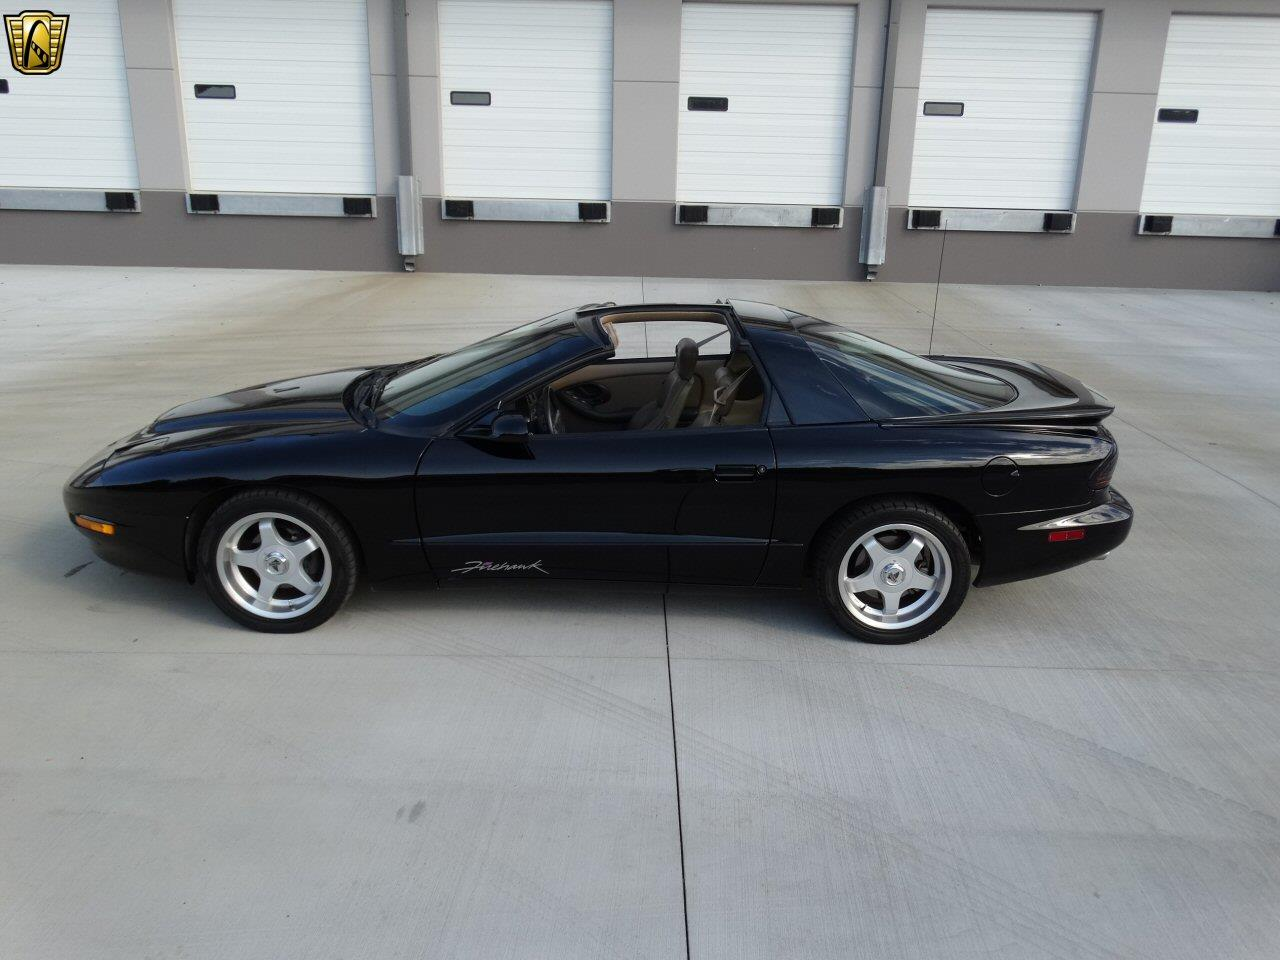 Large Picture of '94 Firebird - $20,995.00 - KF4C